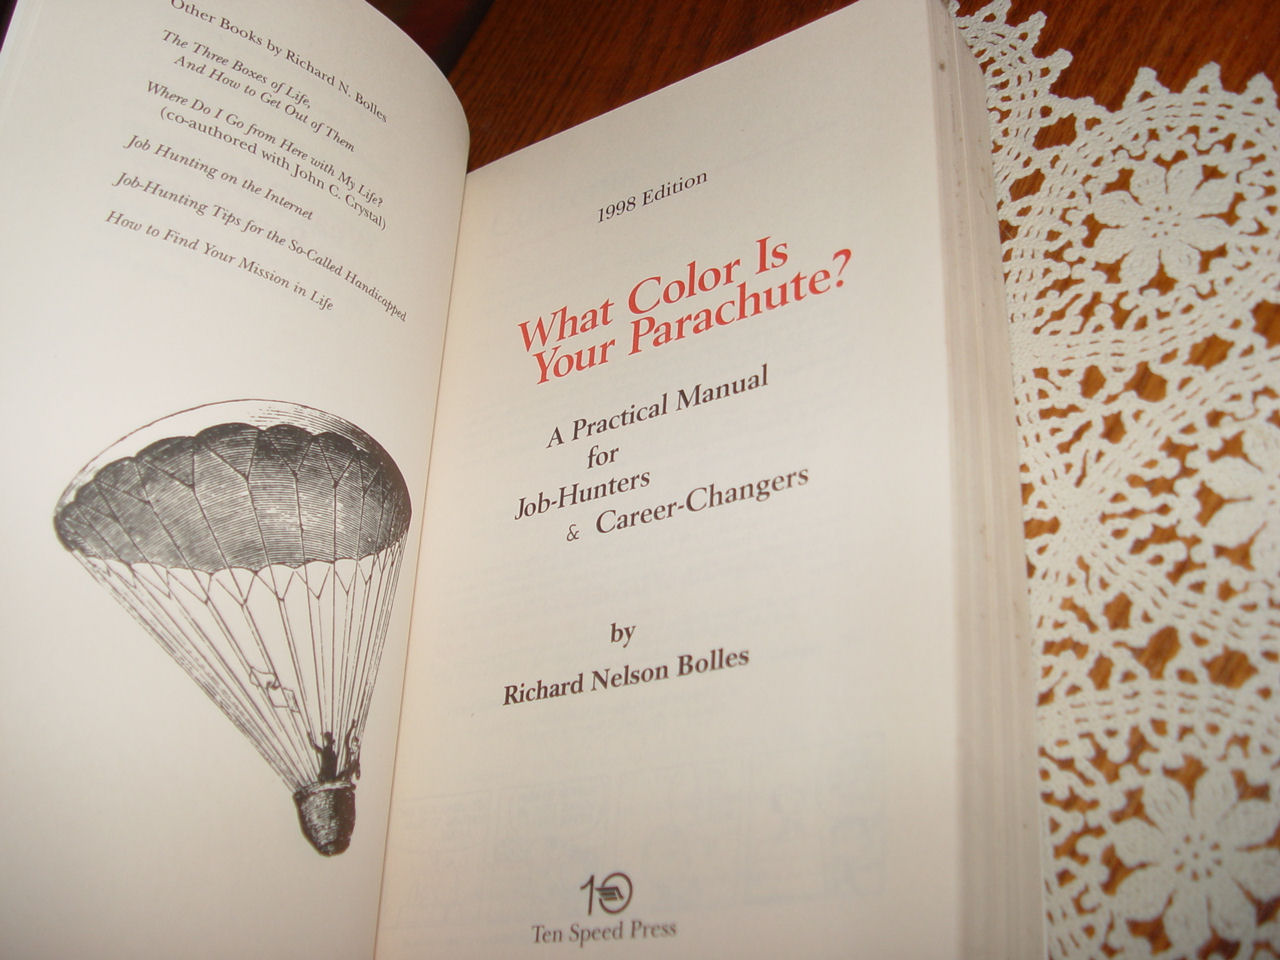 What Color Is                                         Your Parachute? 1998: A                                         Practical Manual for Job-Hunters                                         and Career by Richard N. Bolles